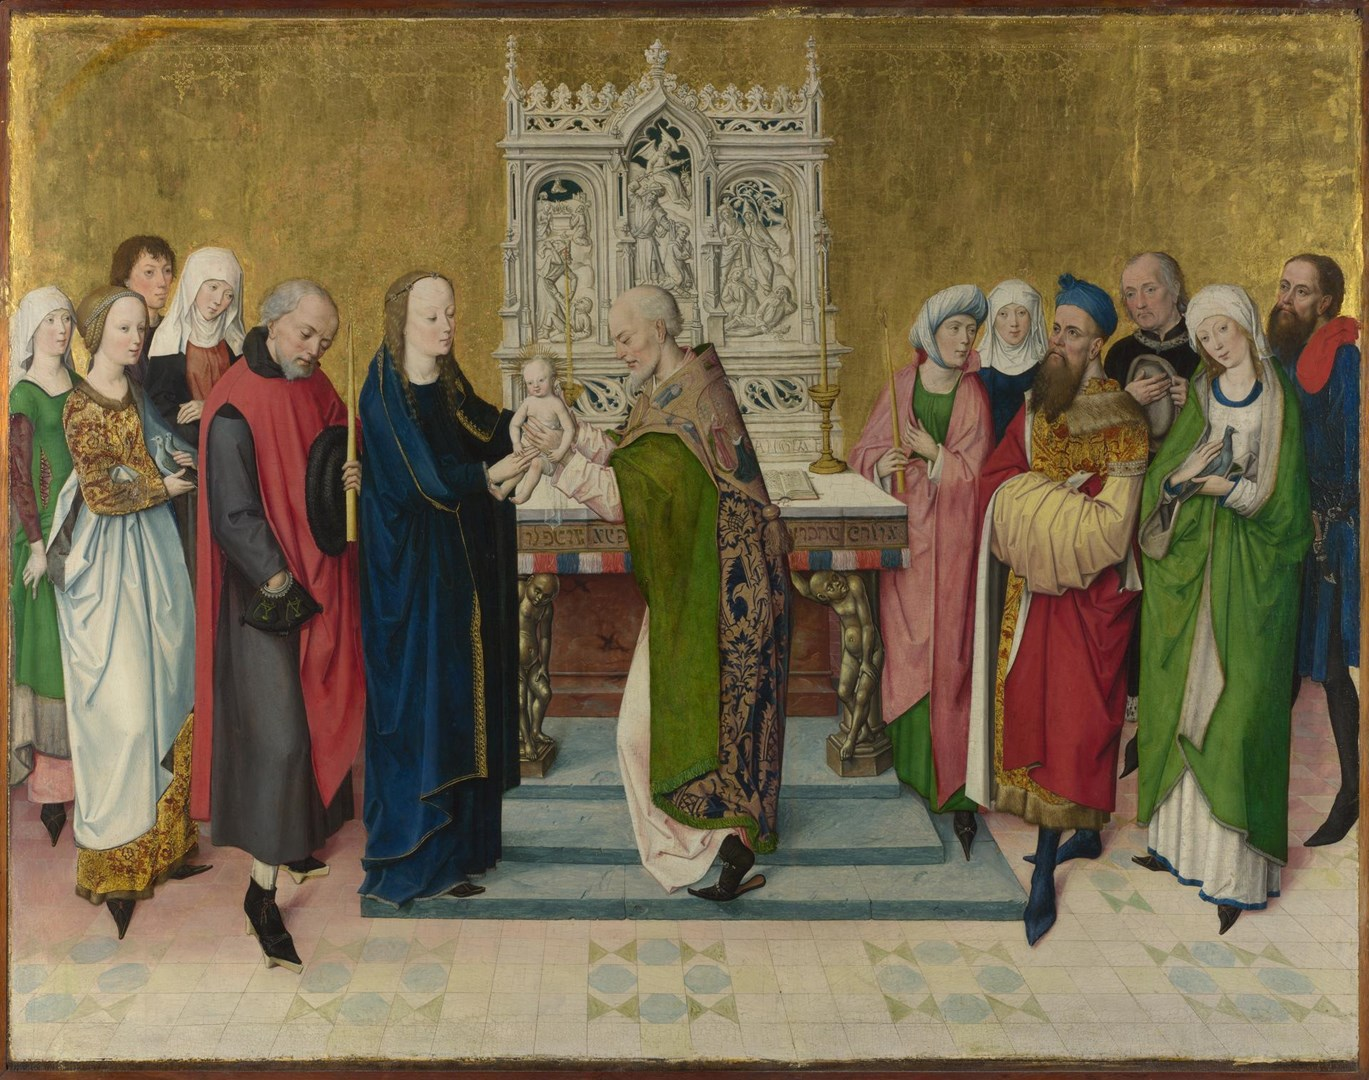 The Presentation in the Temple by Master of the Life of the Virgin